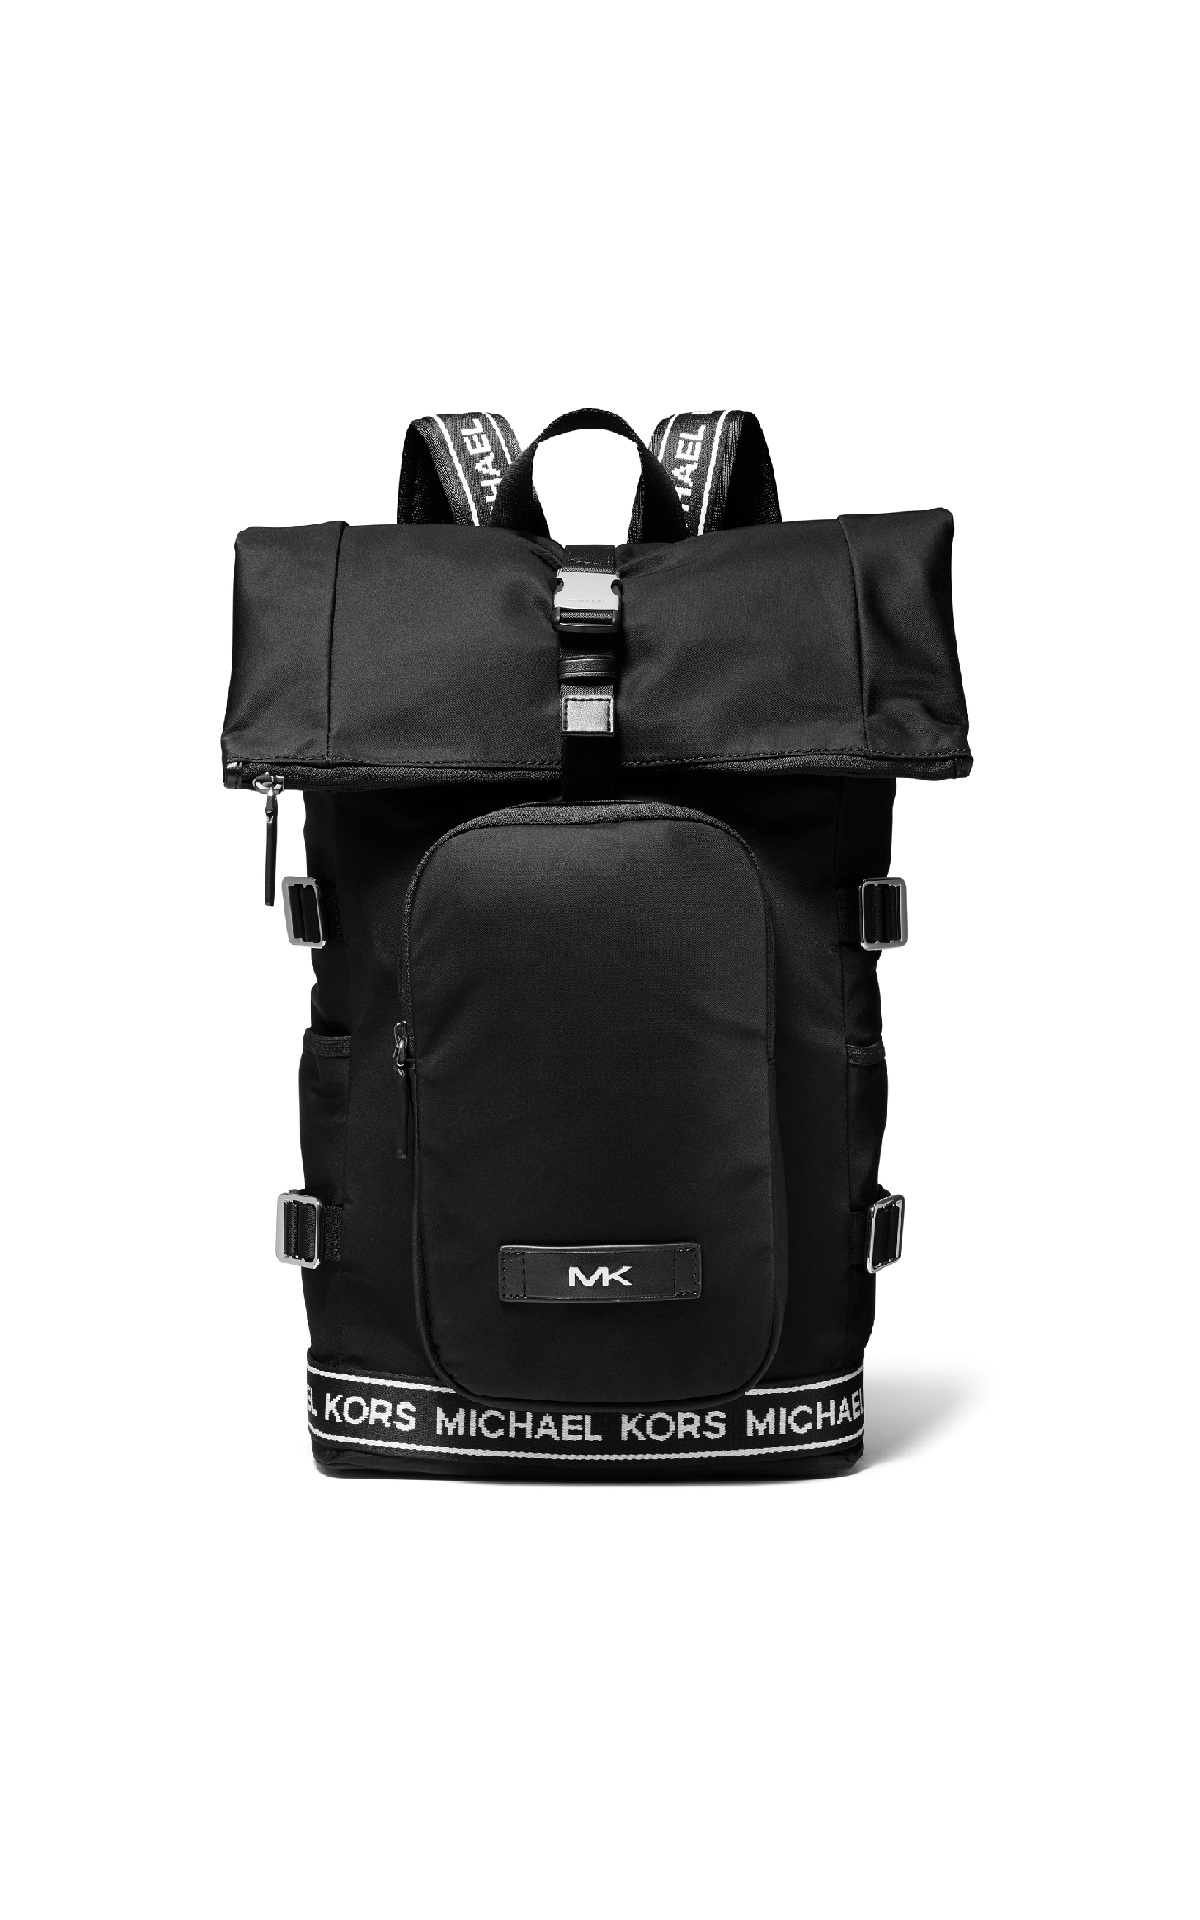 Rolltop backpack Michel Kors